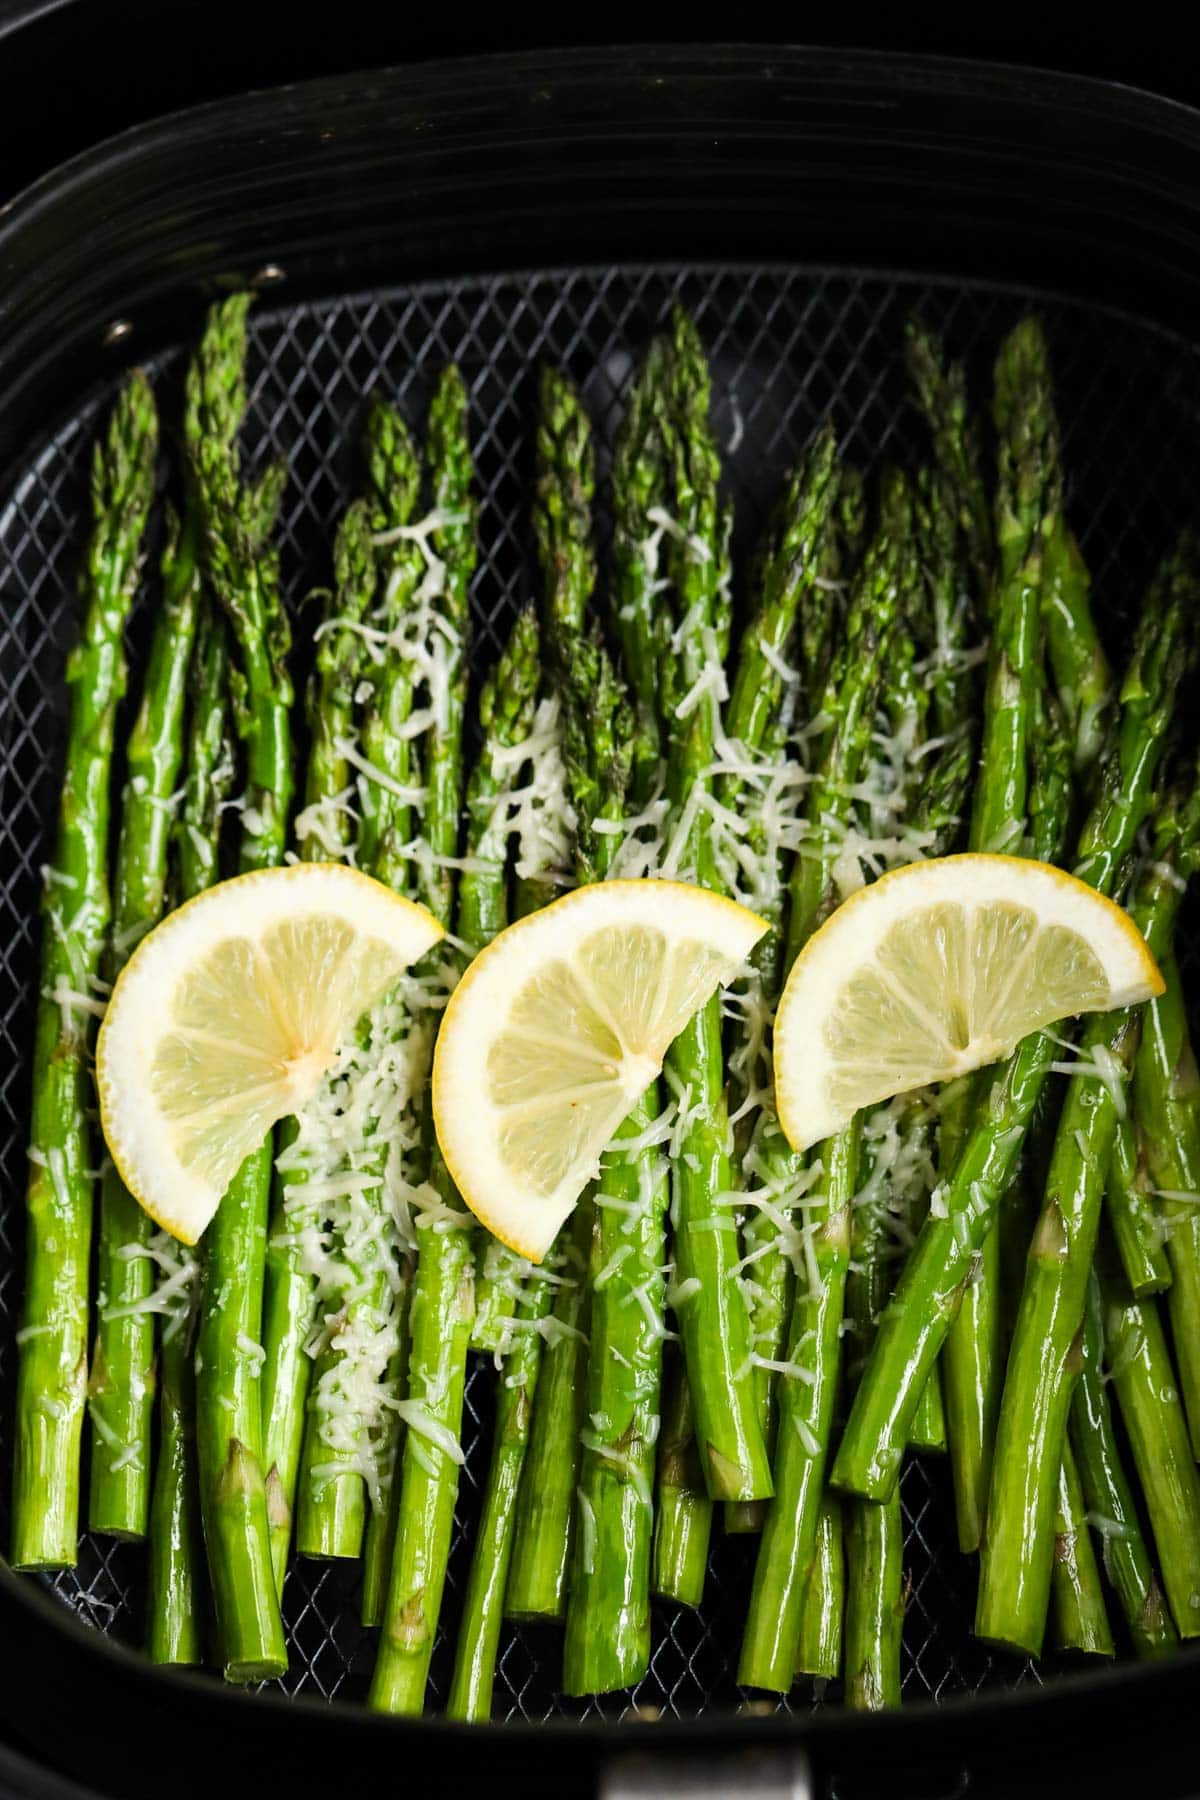 asparagus in air fryer basket with lemon slices and parmesan cheese